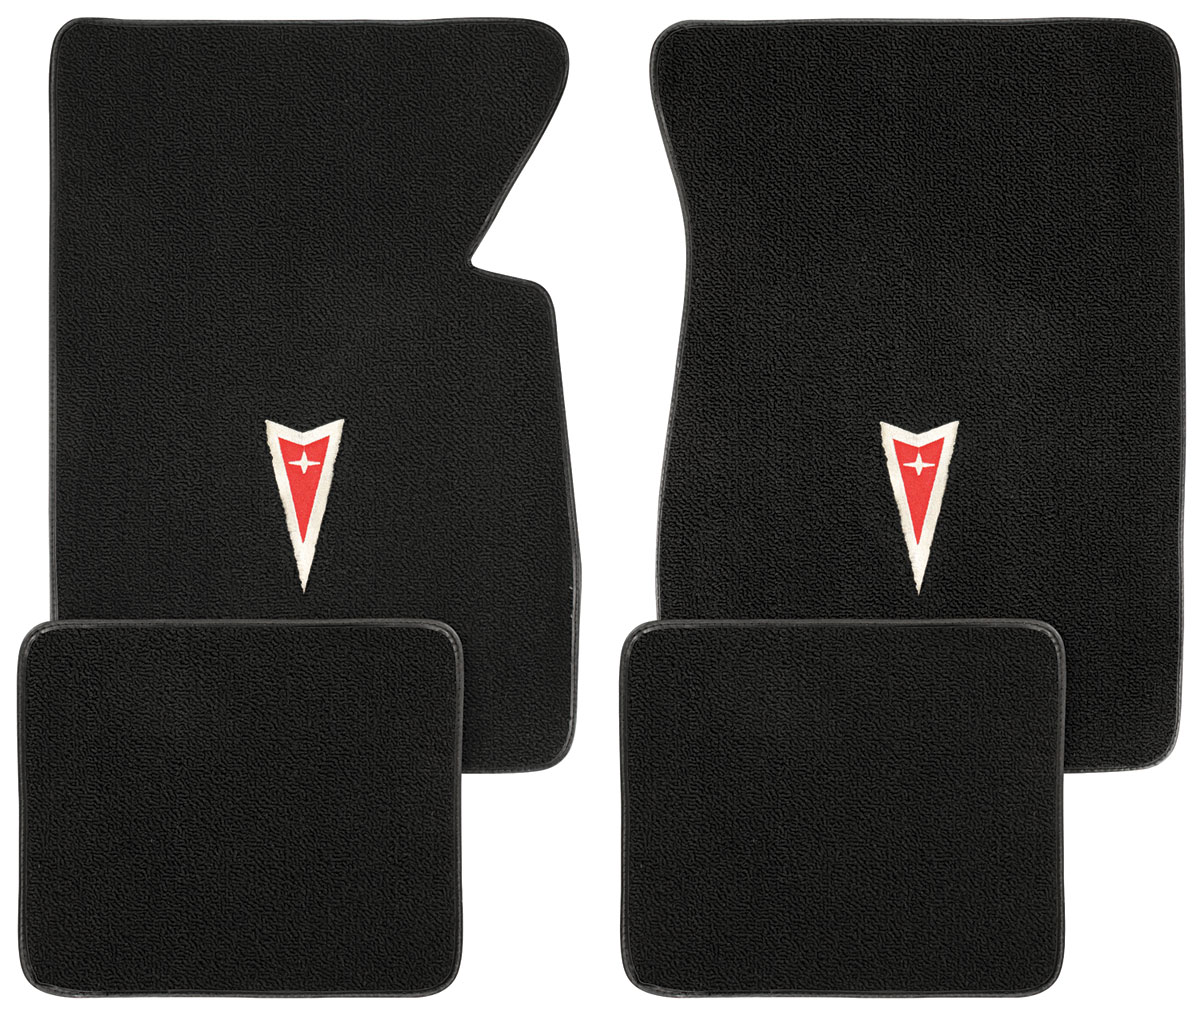 Photo of Floor Mats, Carpet Matched Oem Style Carpet Arrowhead logo, Grand Prix